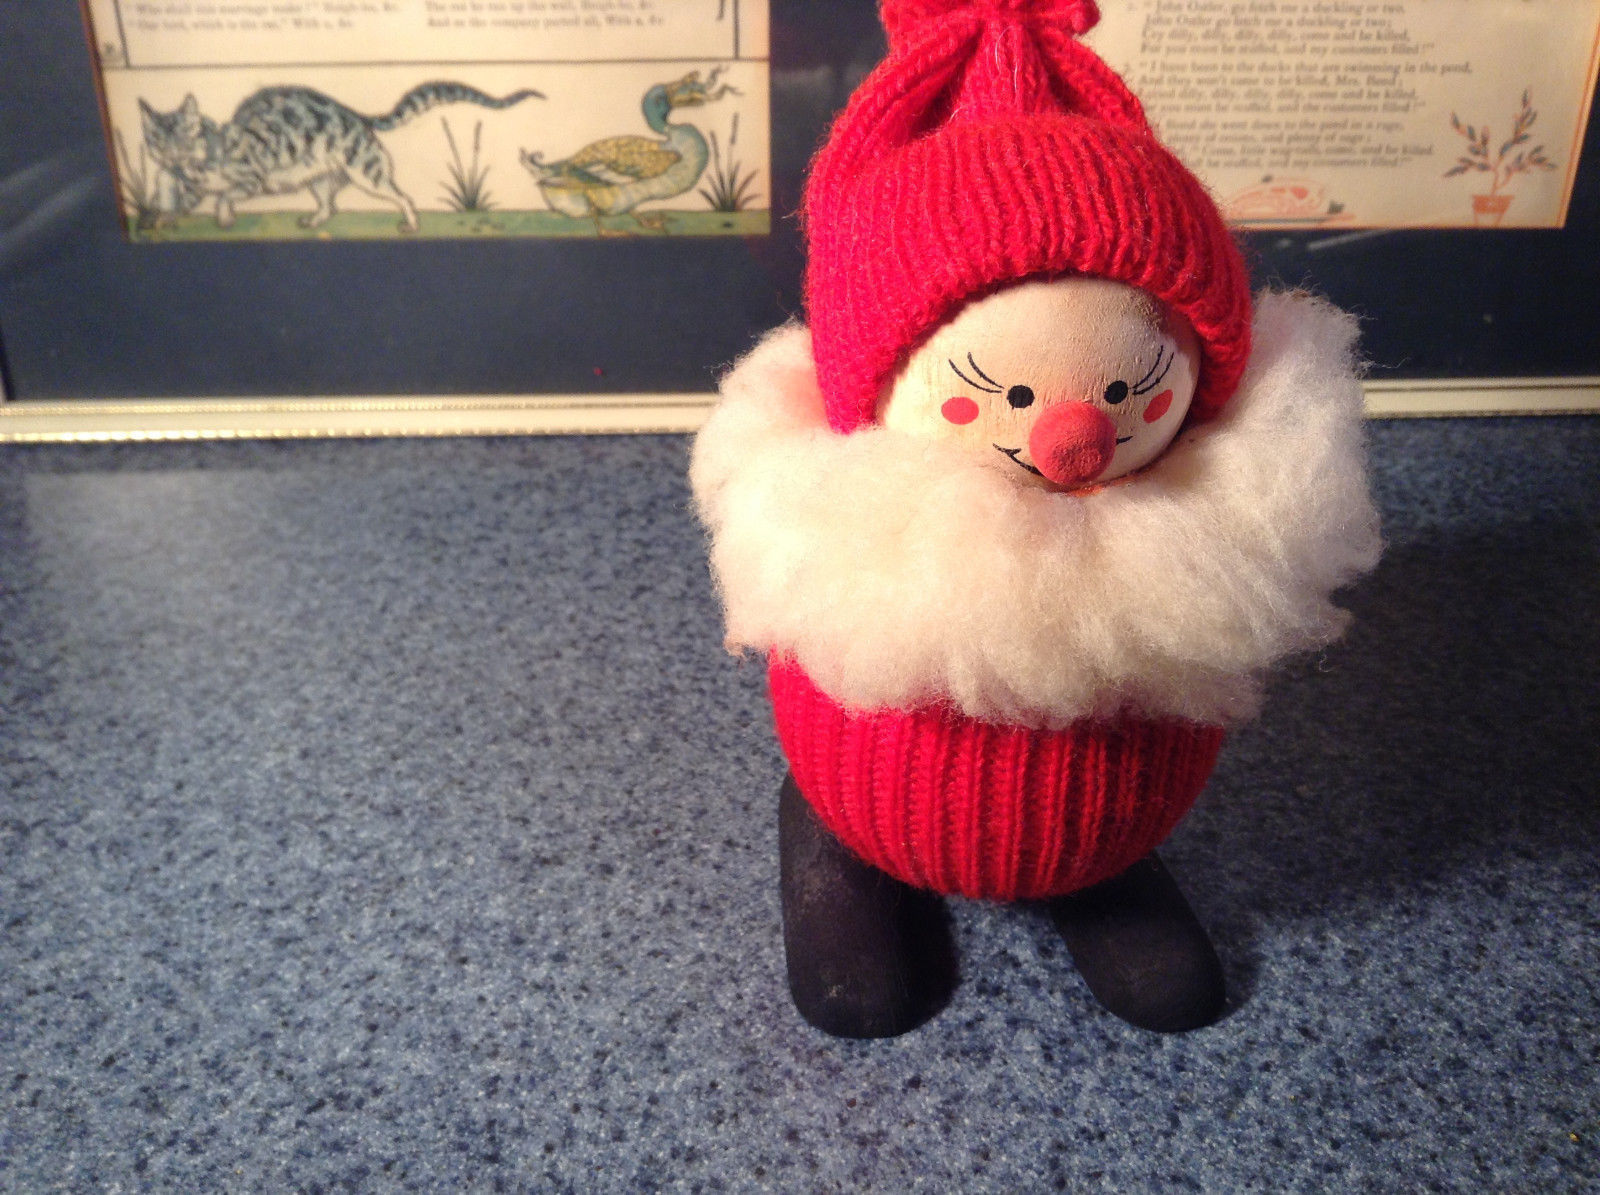 Cute Little Wooden Doll with Red Sweater and Hat with Beard Made in Sweden